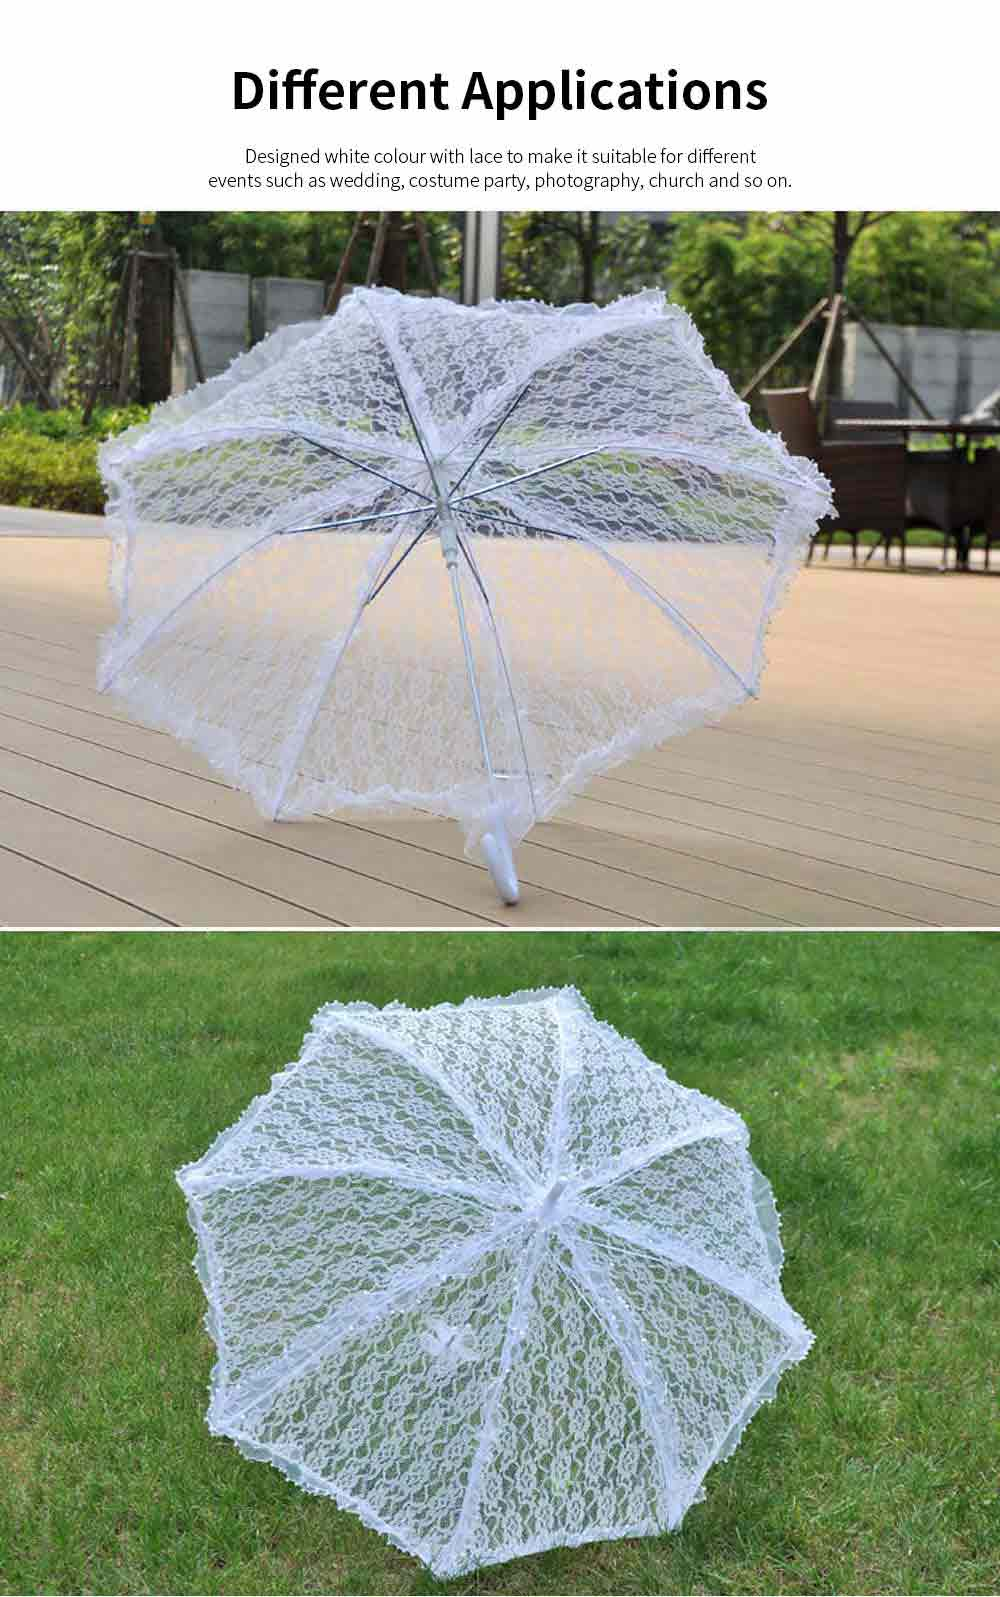 Automatic Wedding Umbrella with Wooden Handle, White Lace Decoration Umbrella, Costume Accessory Wedding Parasol 4